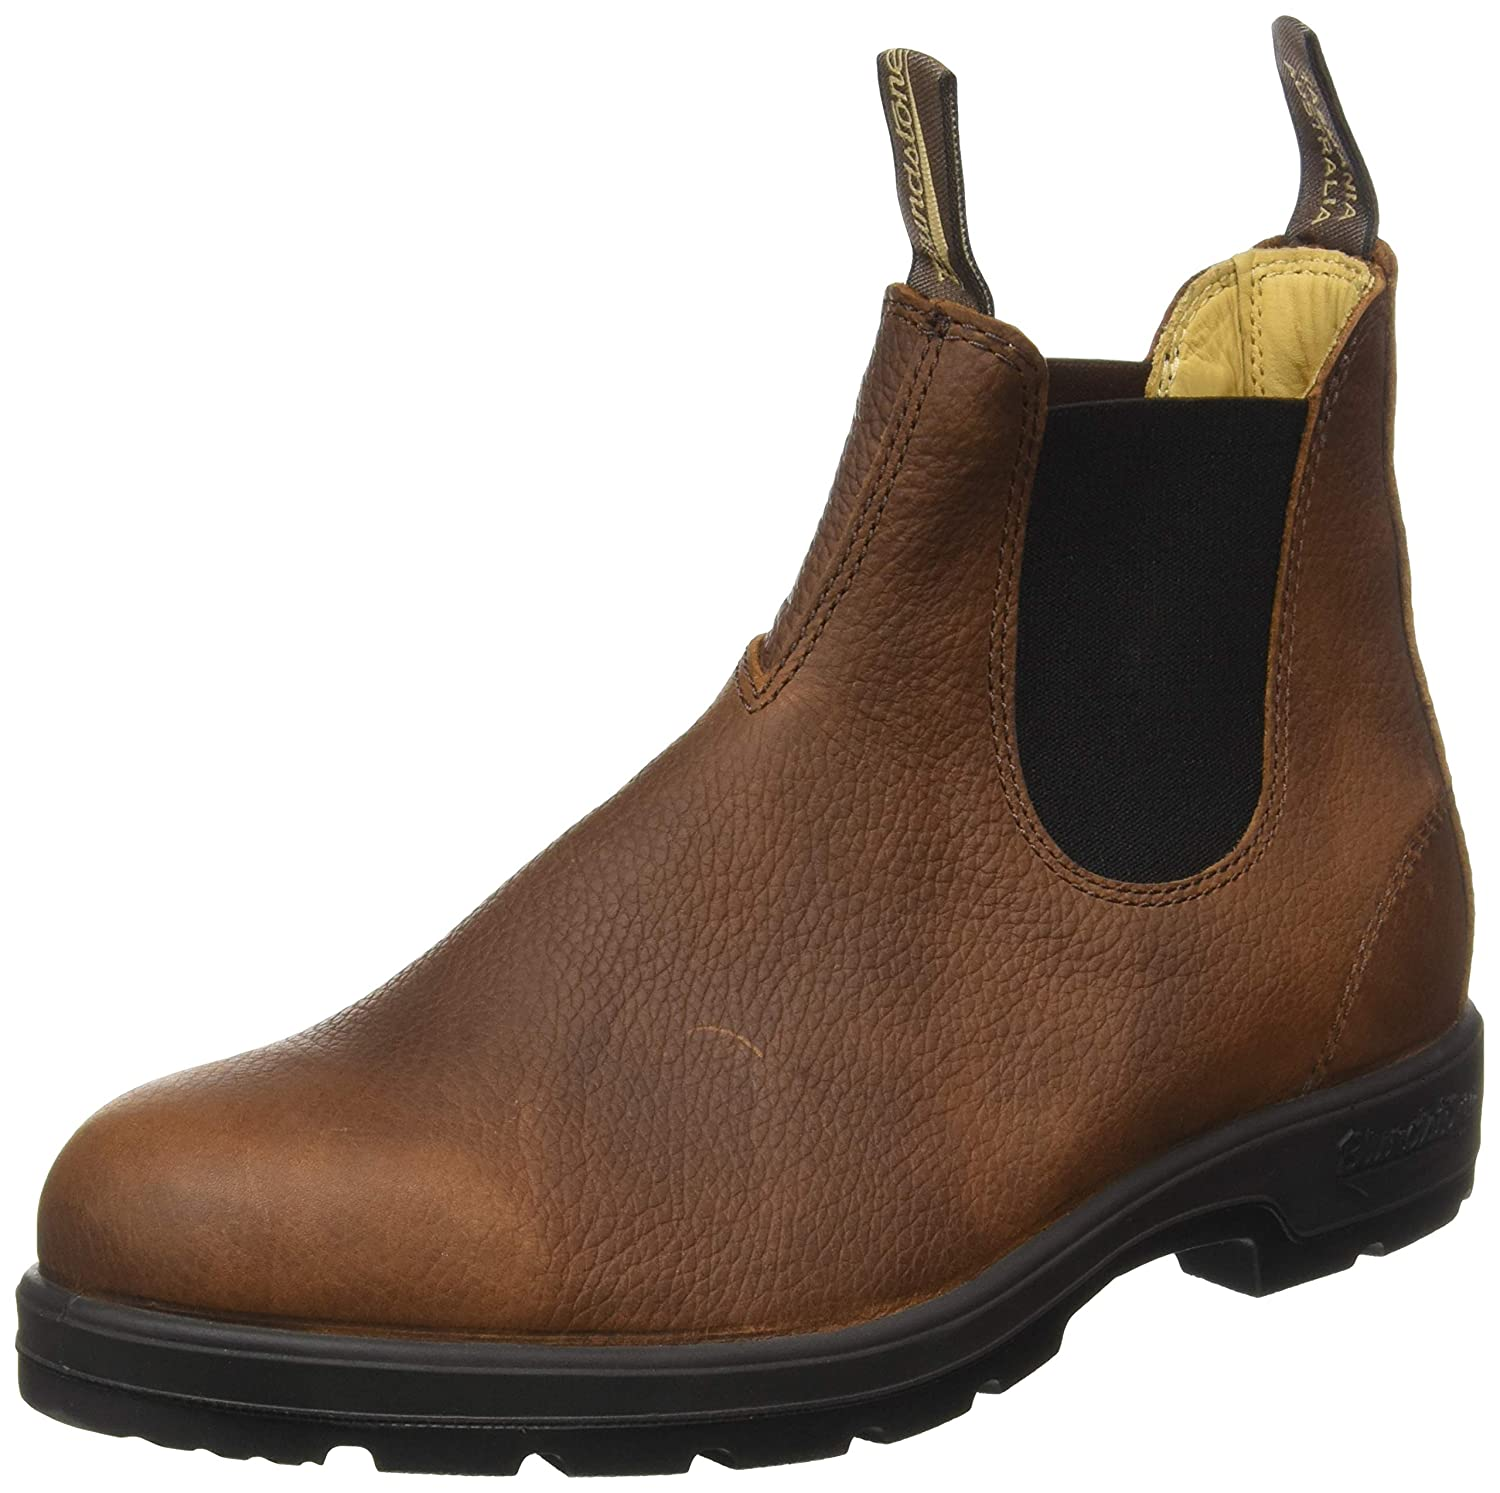 Blundstone Classic Leather 1445, Botas Chelsea para Mujer